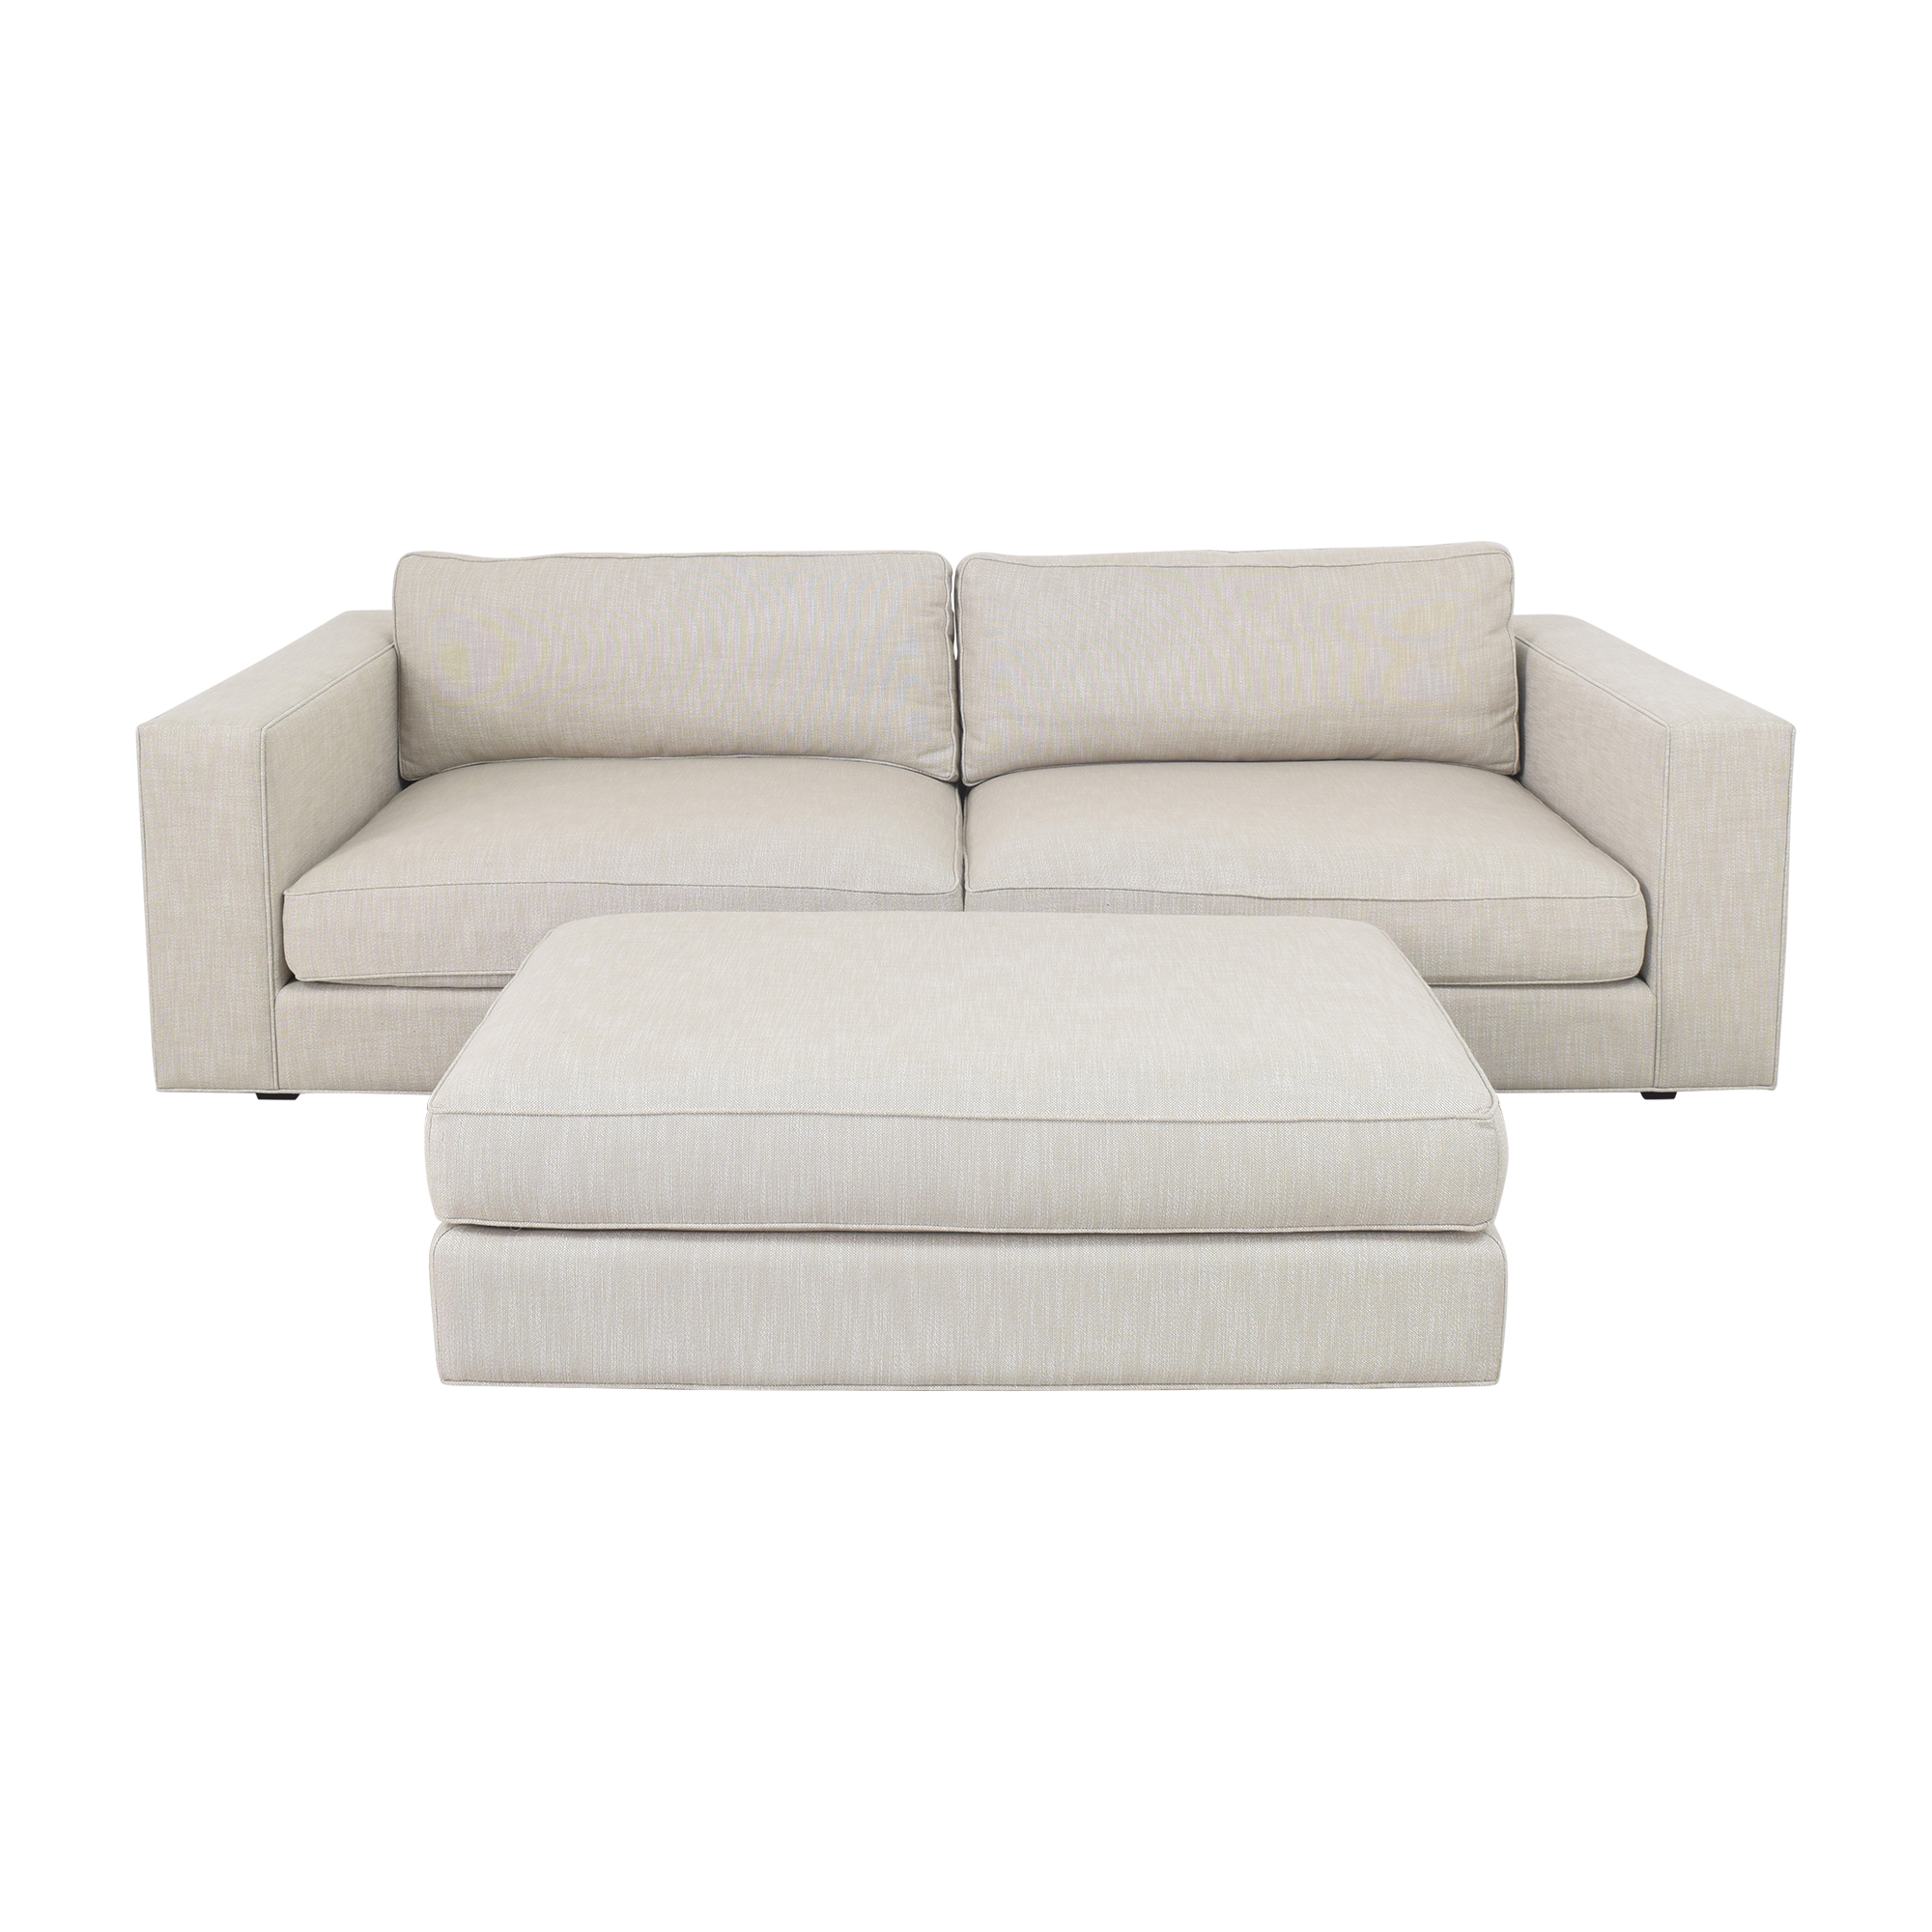 Restoration Hardware Maddox Sofa with Ottoman Restoration Hardware